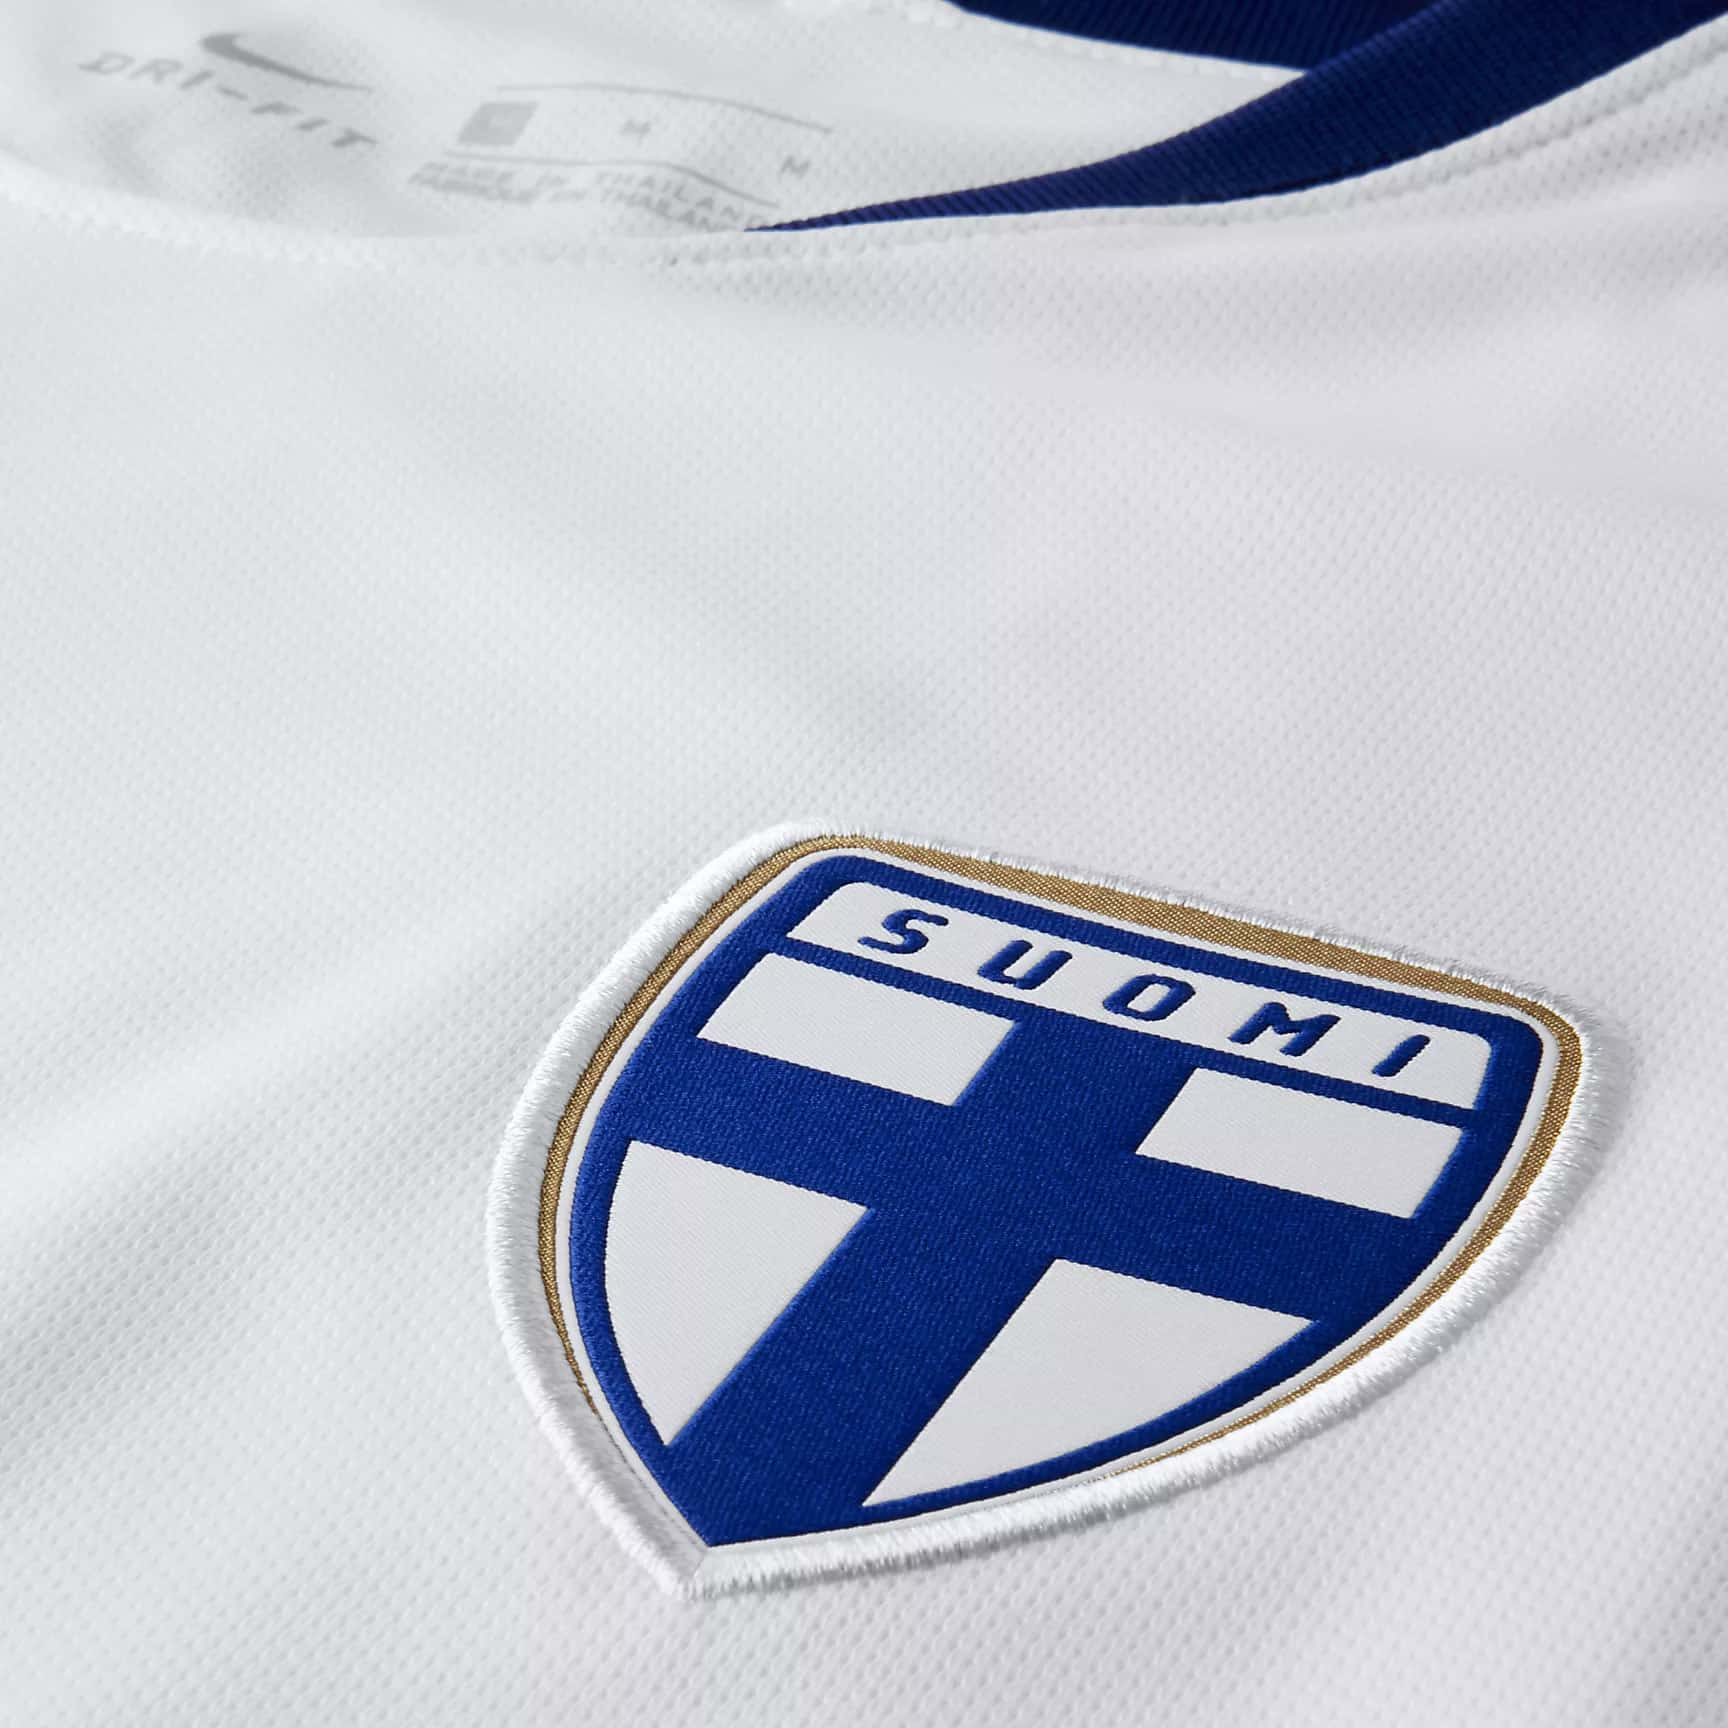 maillot-finlande-nike-6